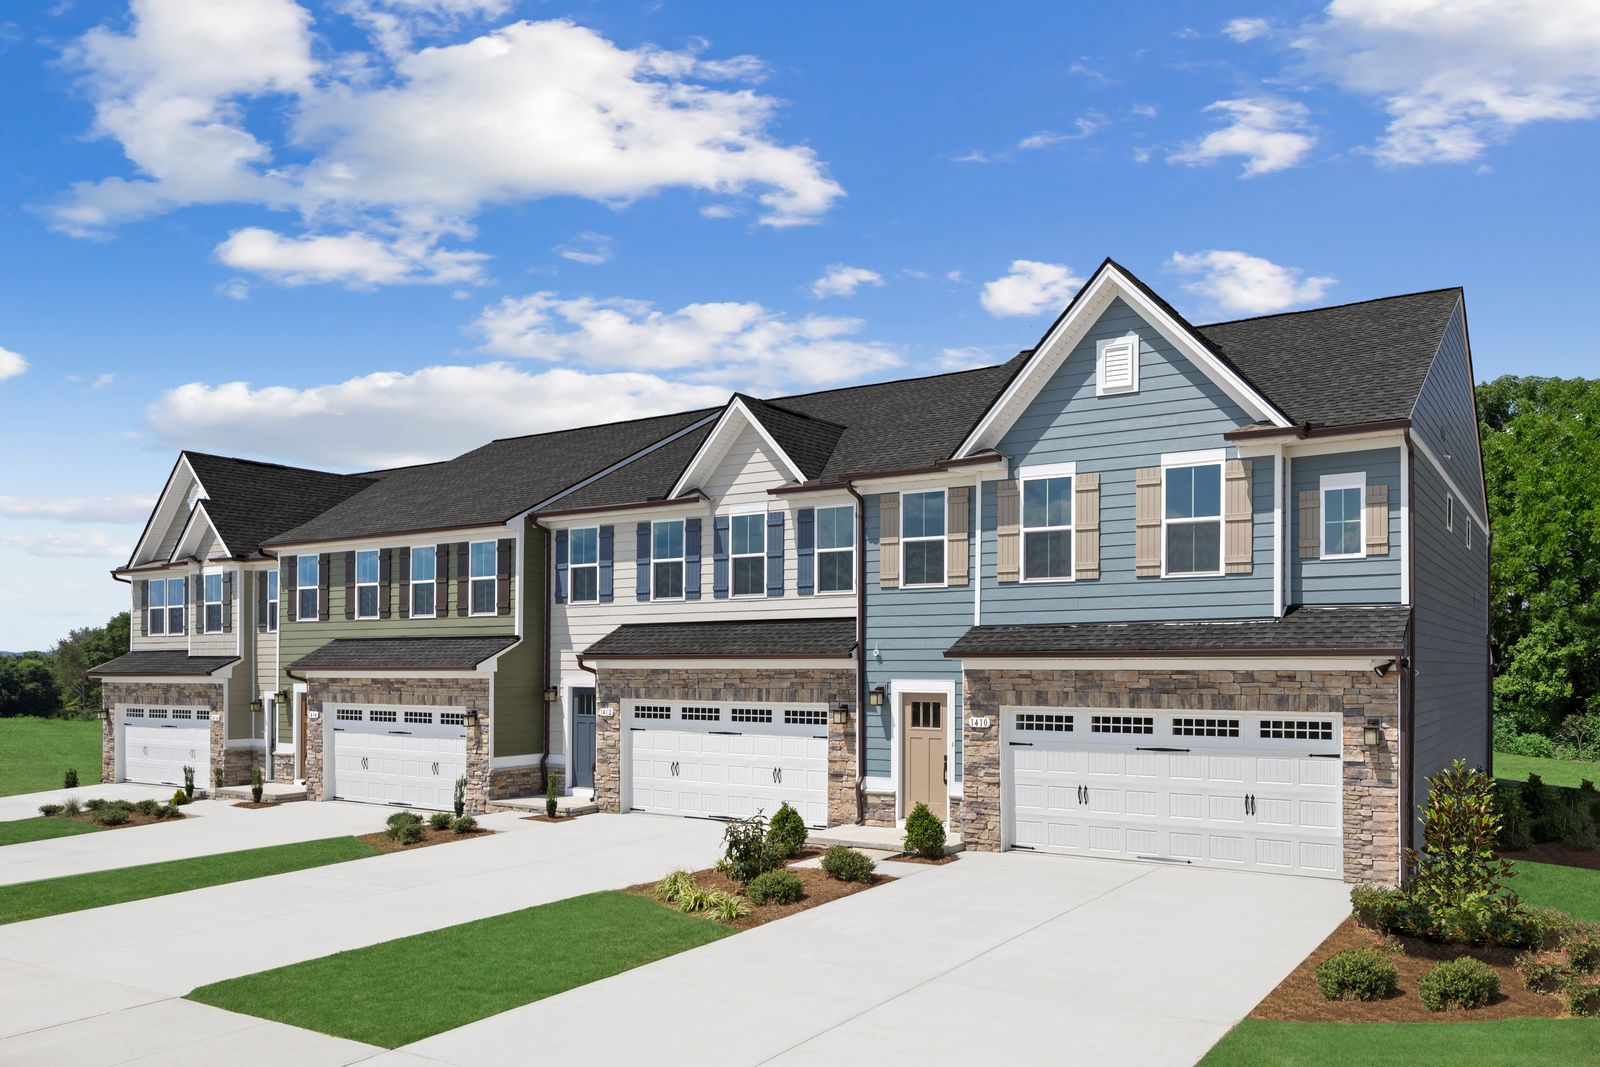 Windsong: Now Scheduling Appointments!:Click here to schedule your appointment! You'll meet with our sales team to choose your floorplan, homesite, and finally be able to purchase your new home at Windsong!